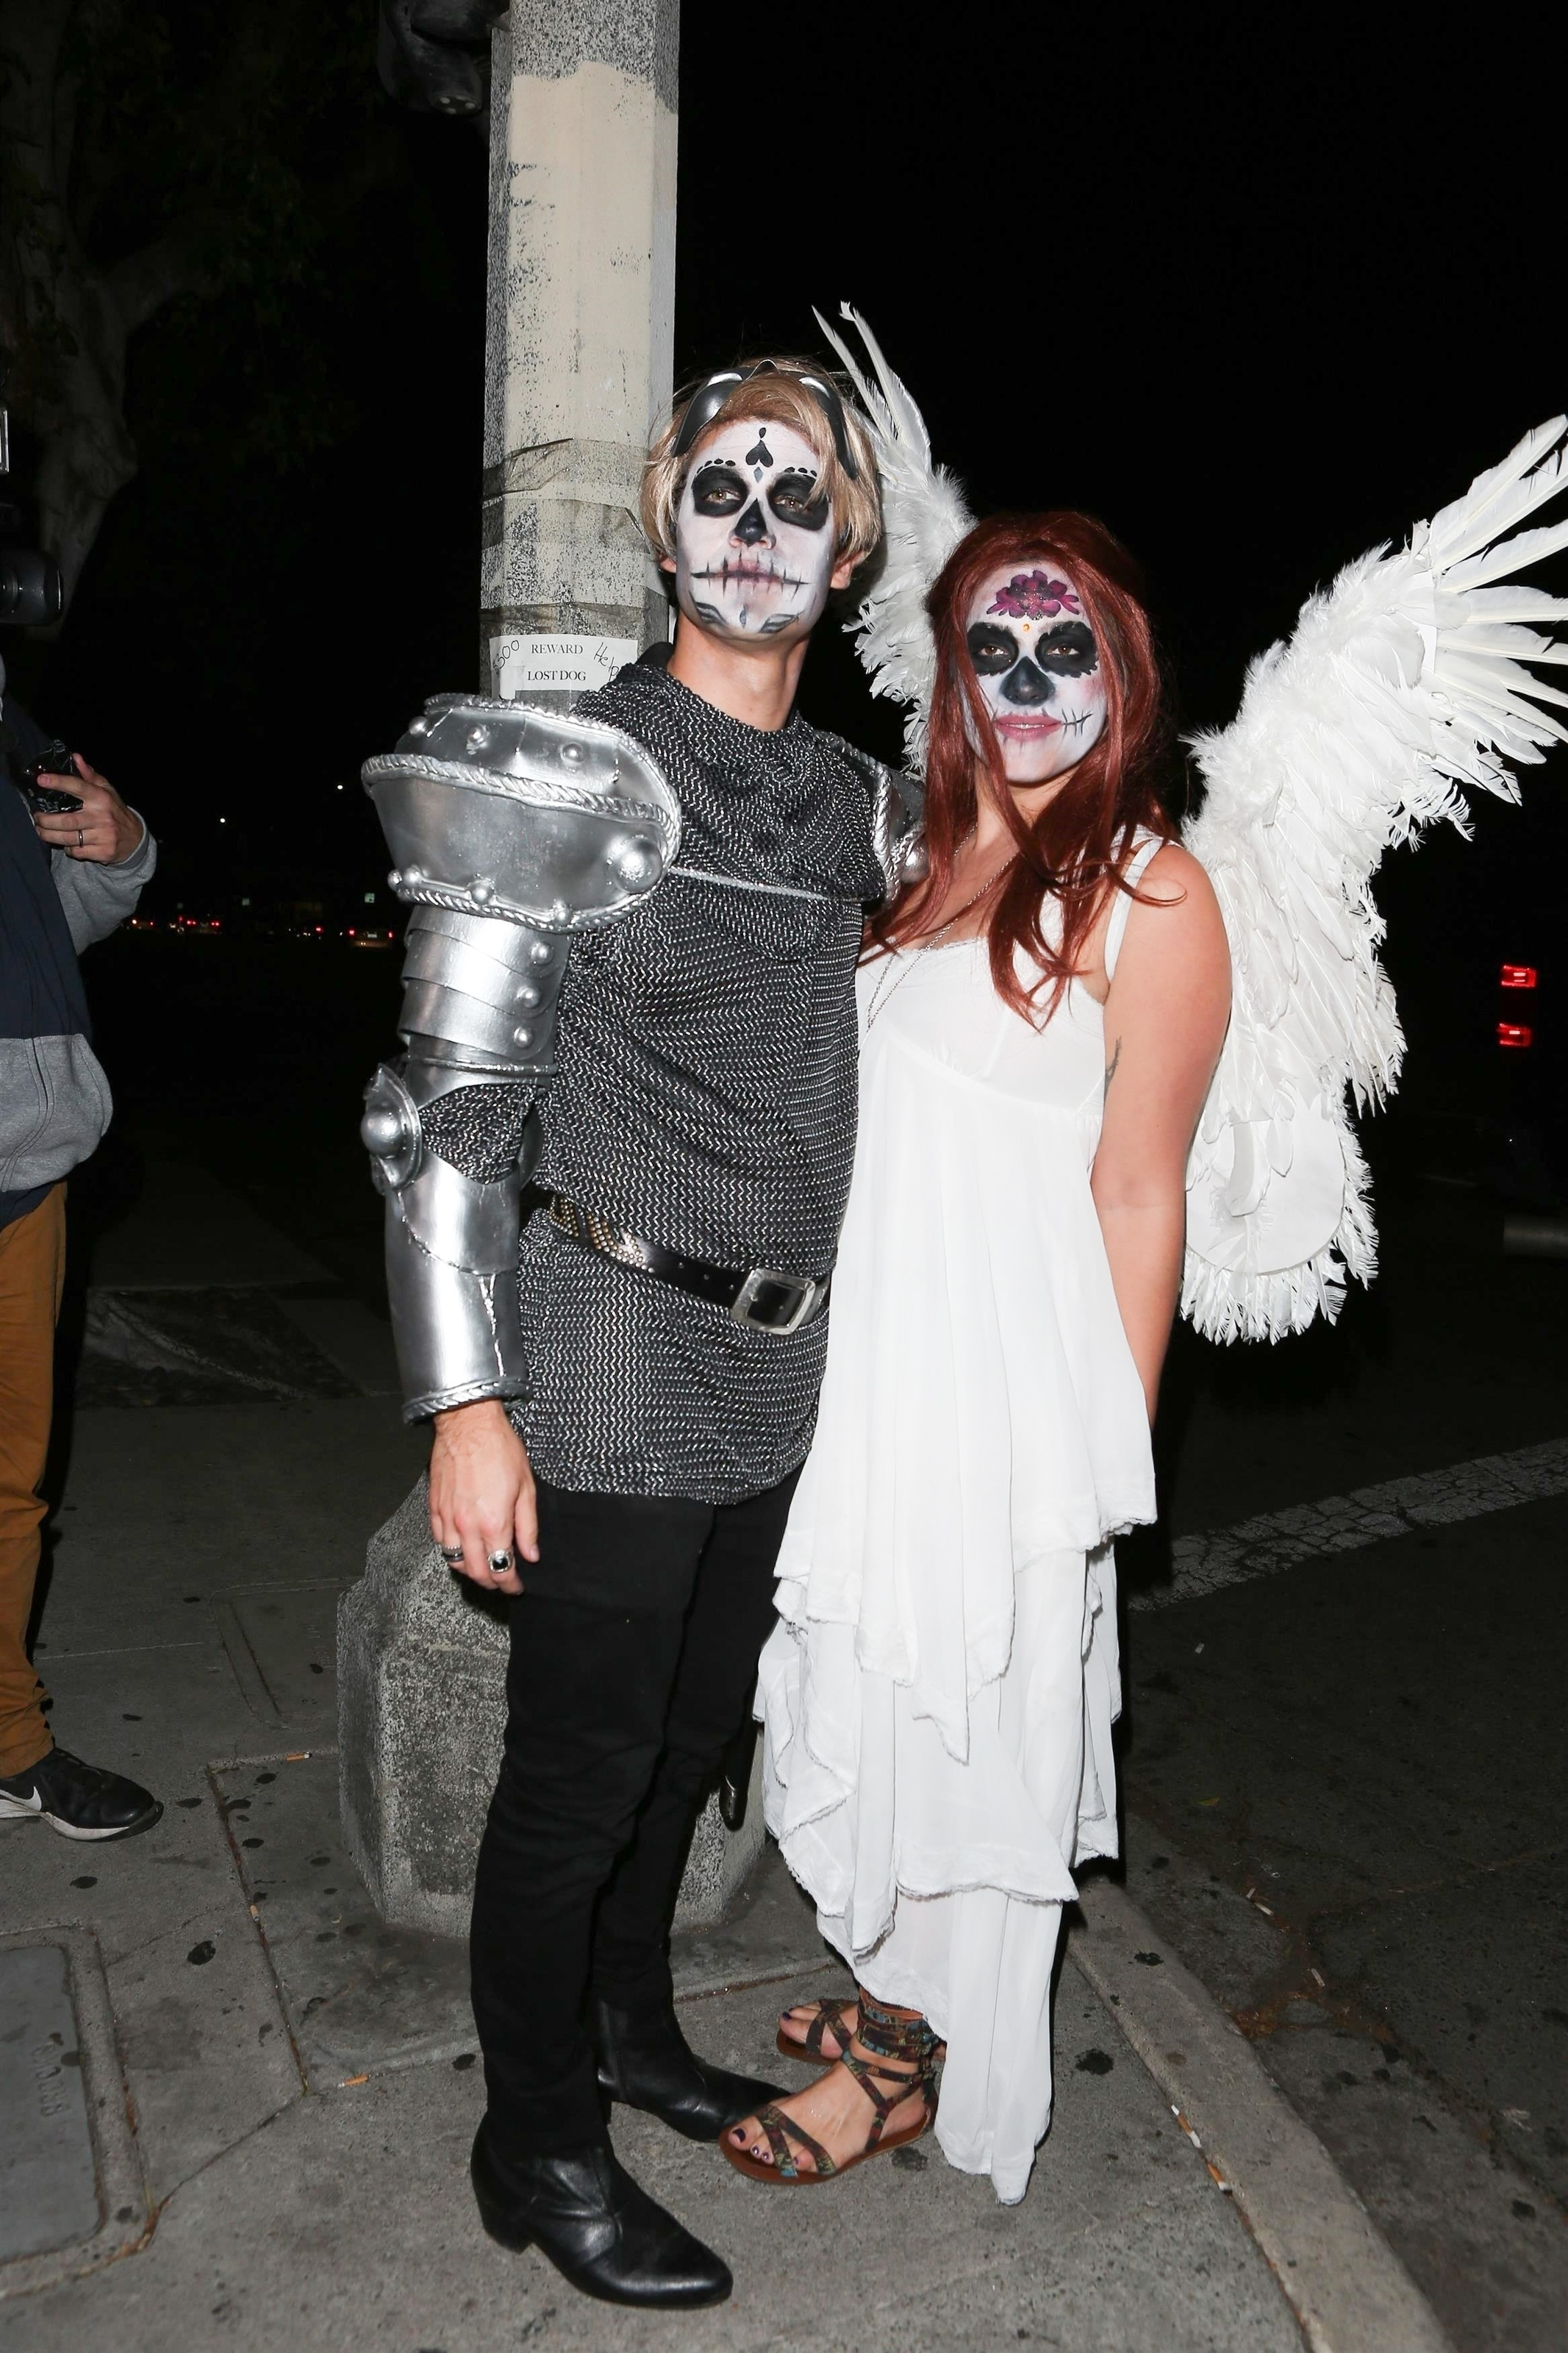 Darren Criss and Mia Swier attend Matthew Morrison's 7th annual Halloween party in Los Angeles, Calif., on Oct. 28, 2017.